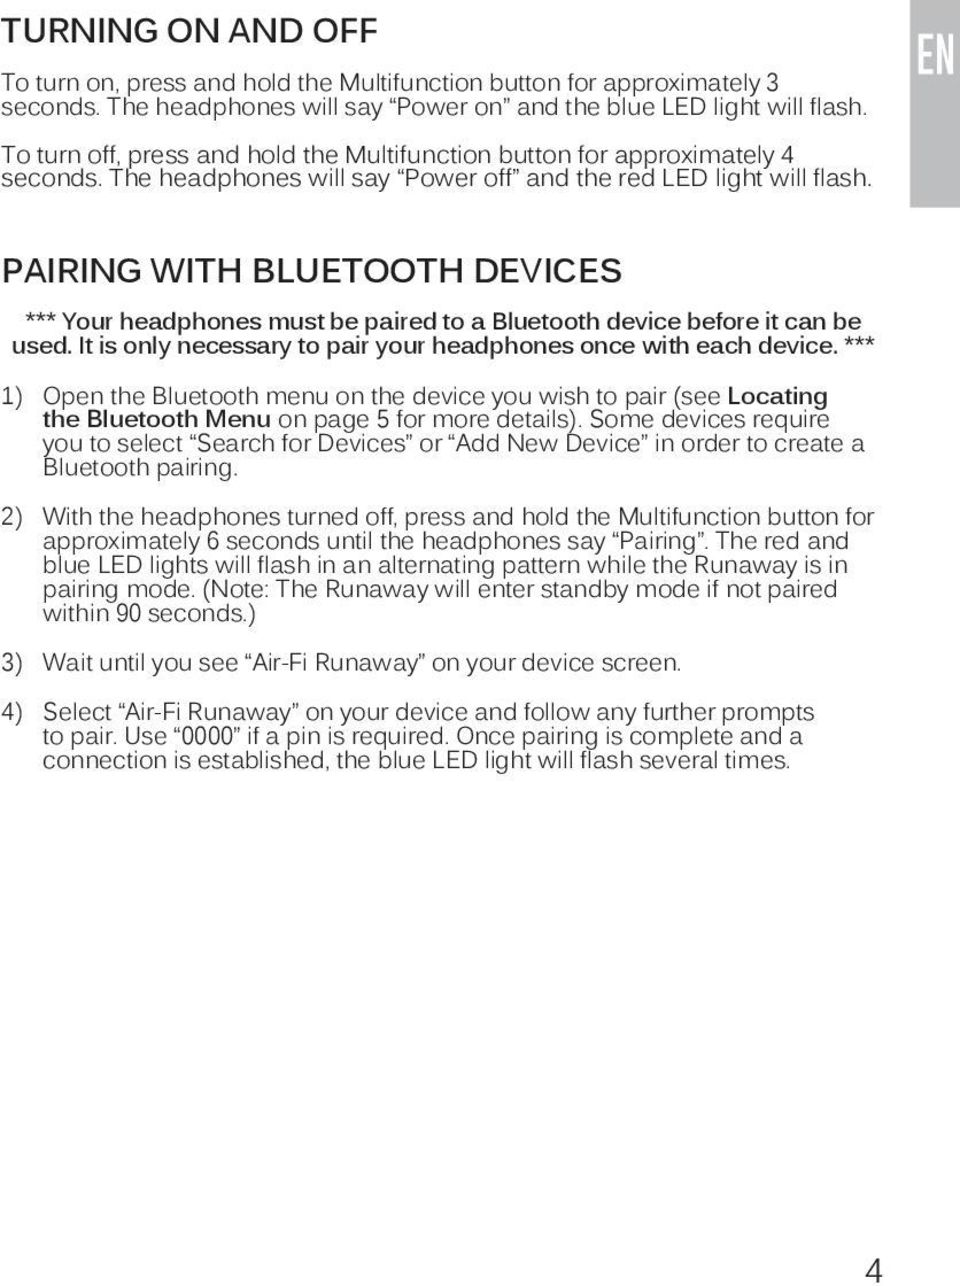 PAIRING WITH BLUETOOTH DEVICES *** Your headphones must be paired to a Bluetooth device before it can be used. It is only necessary to pair your headphones once with each device.